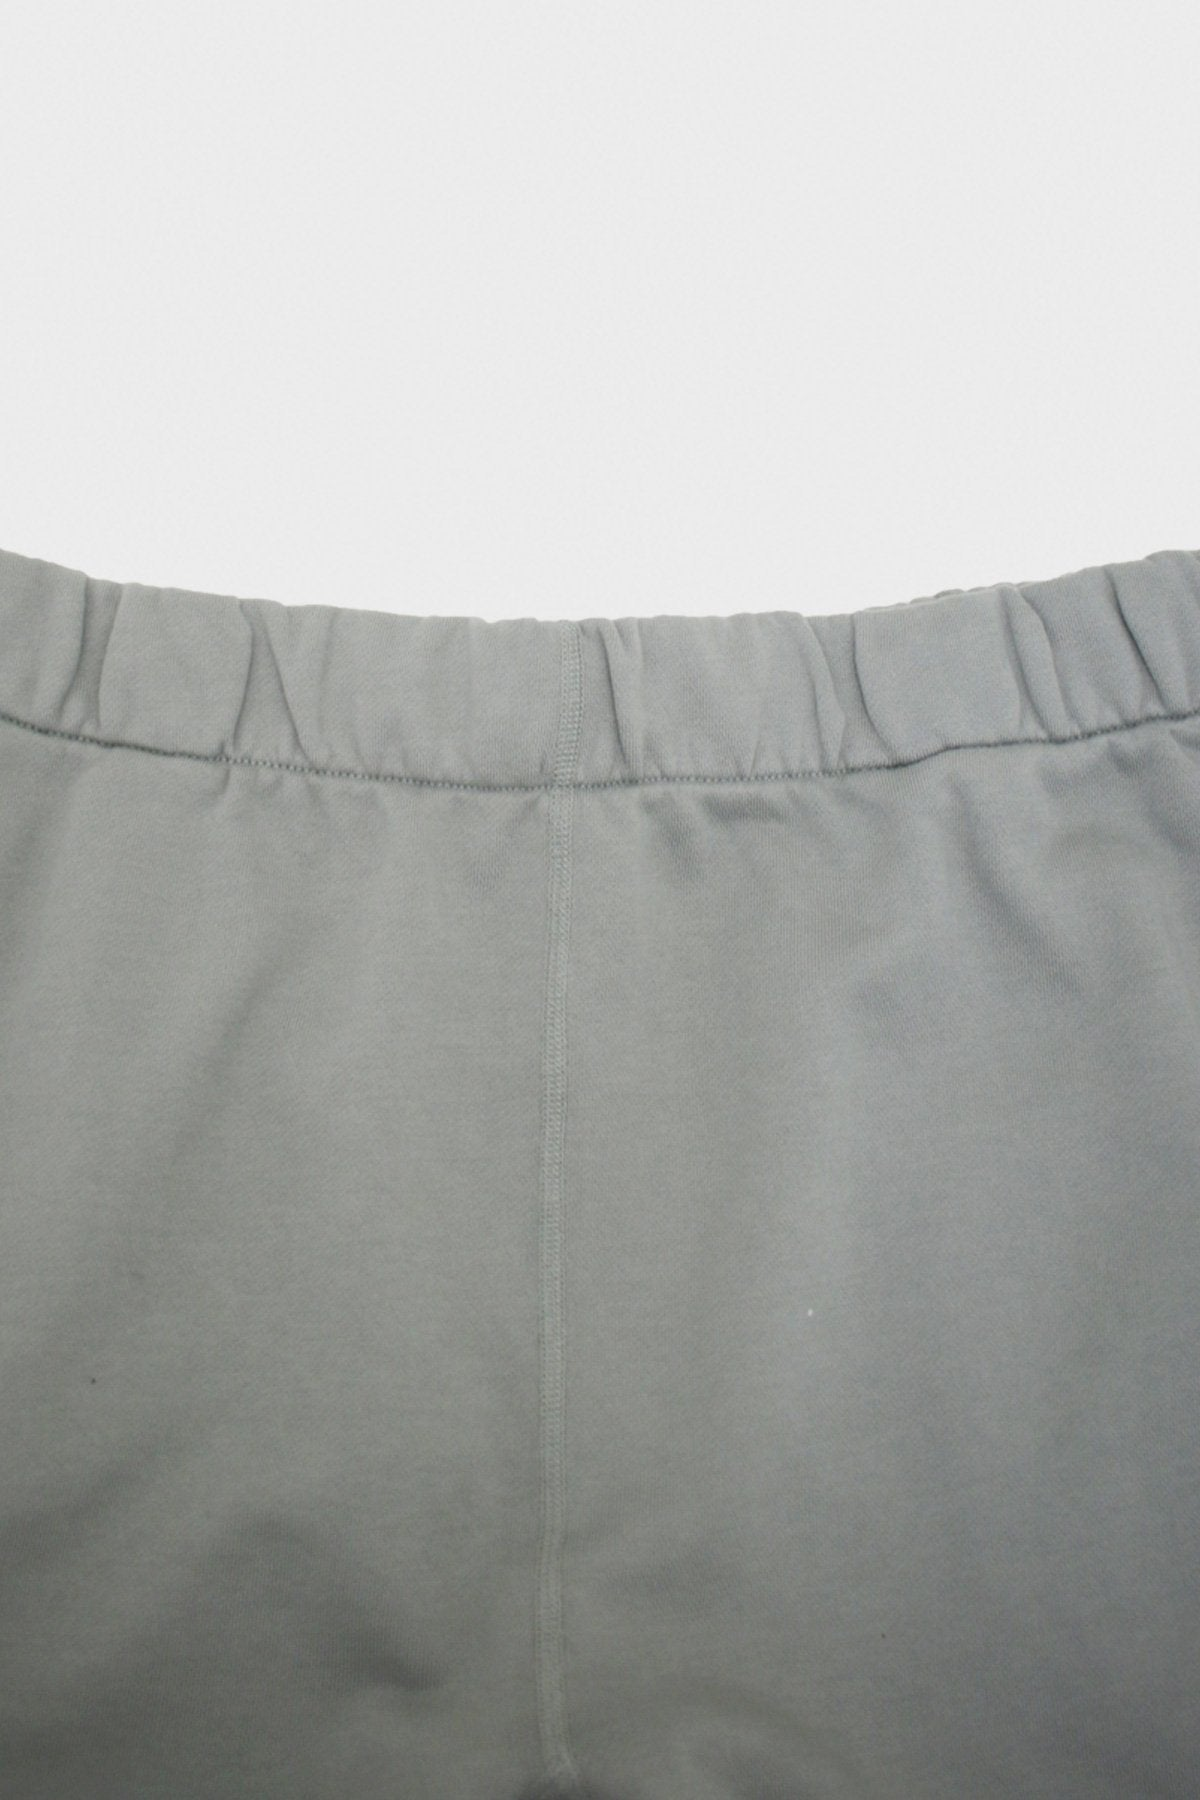 Lady White Co. - LW Sweatshort - Steel Grey - Canoe Club